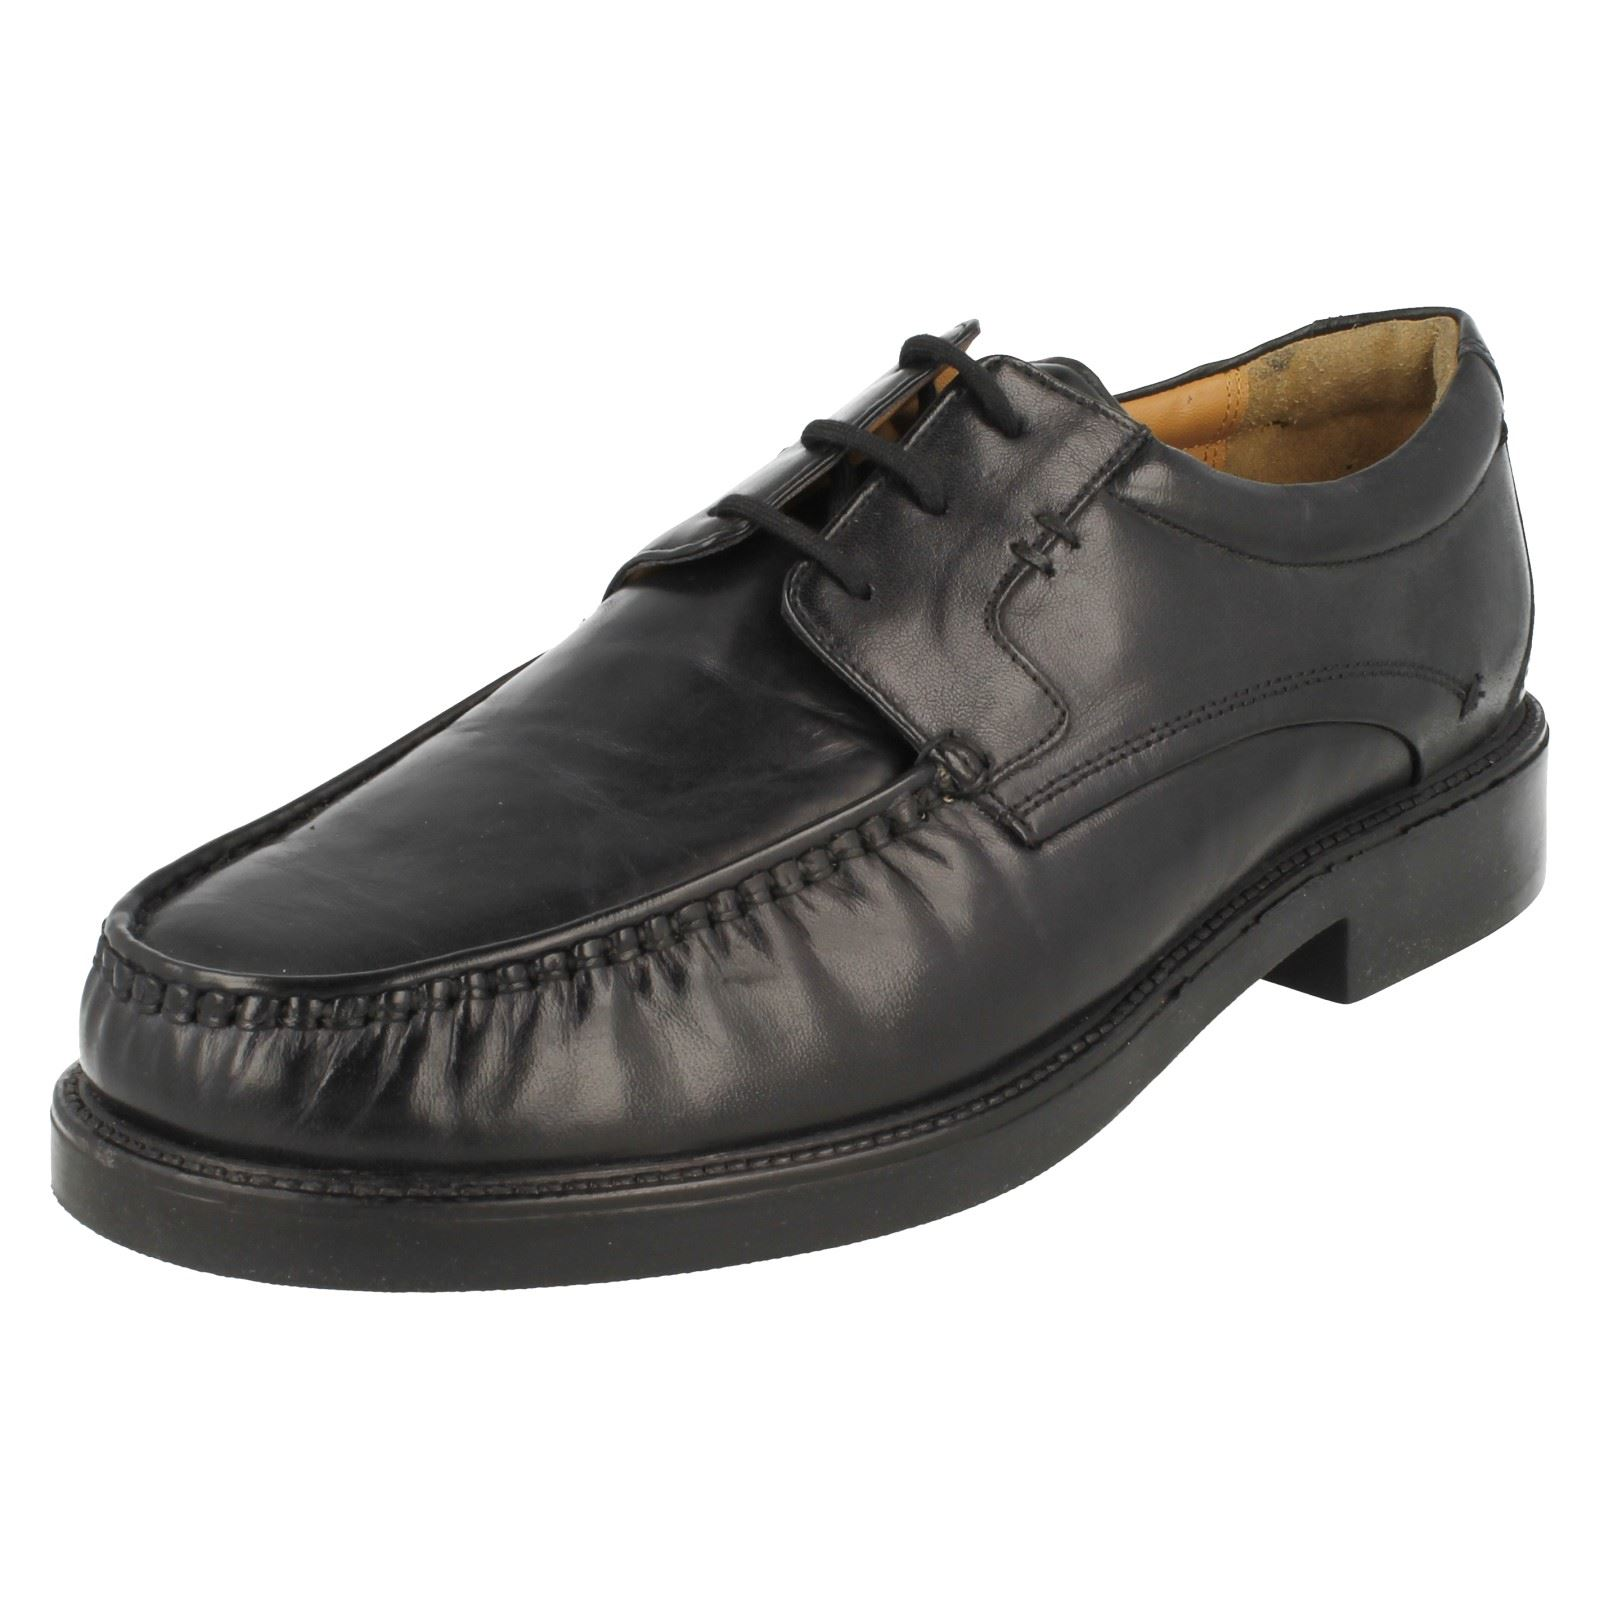 mens clarks formal lace up shoes hub type ebay